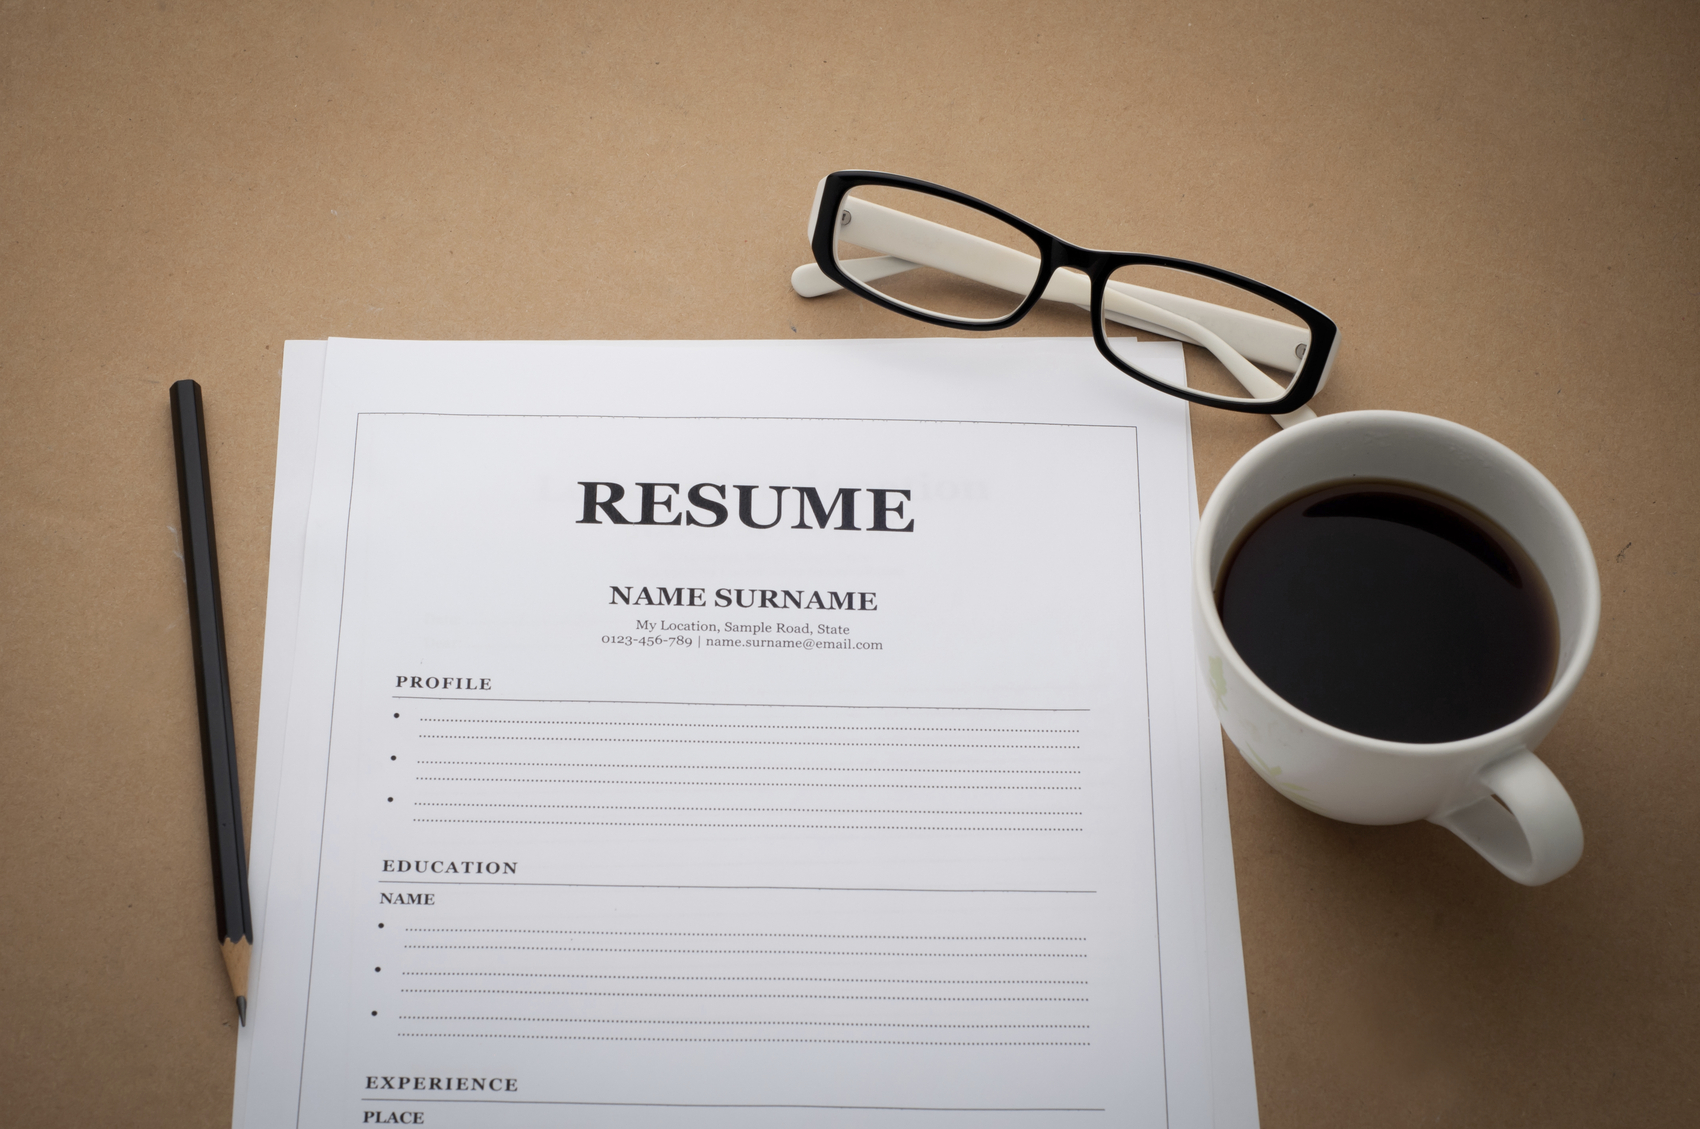 resume writing 101 vanderhouwen